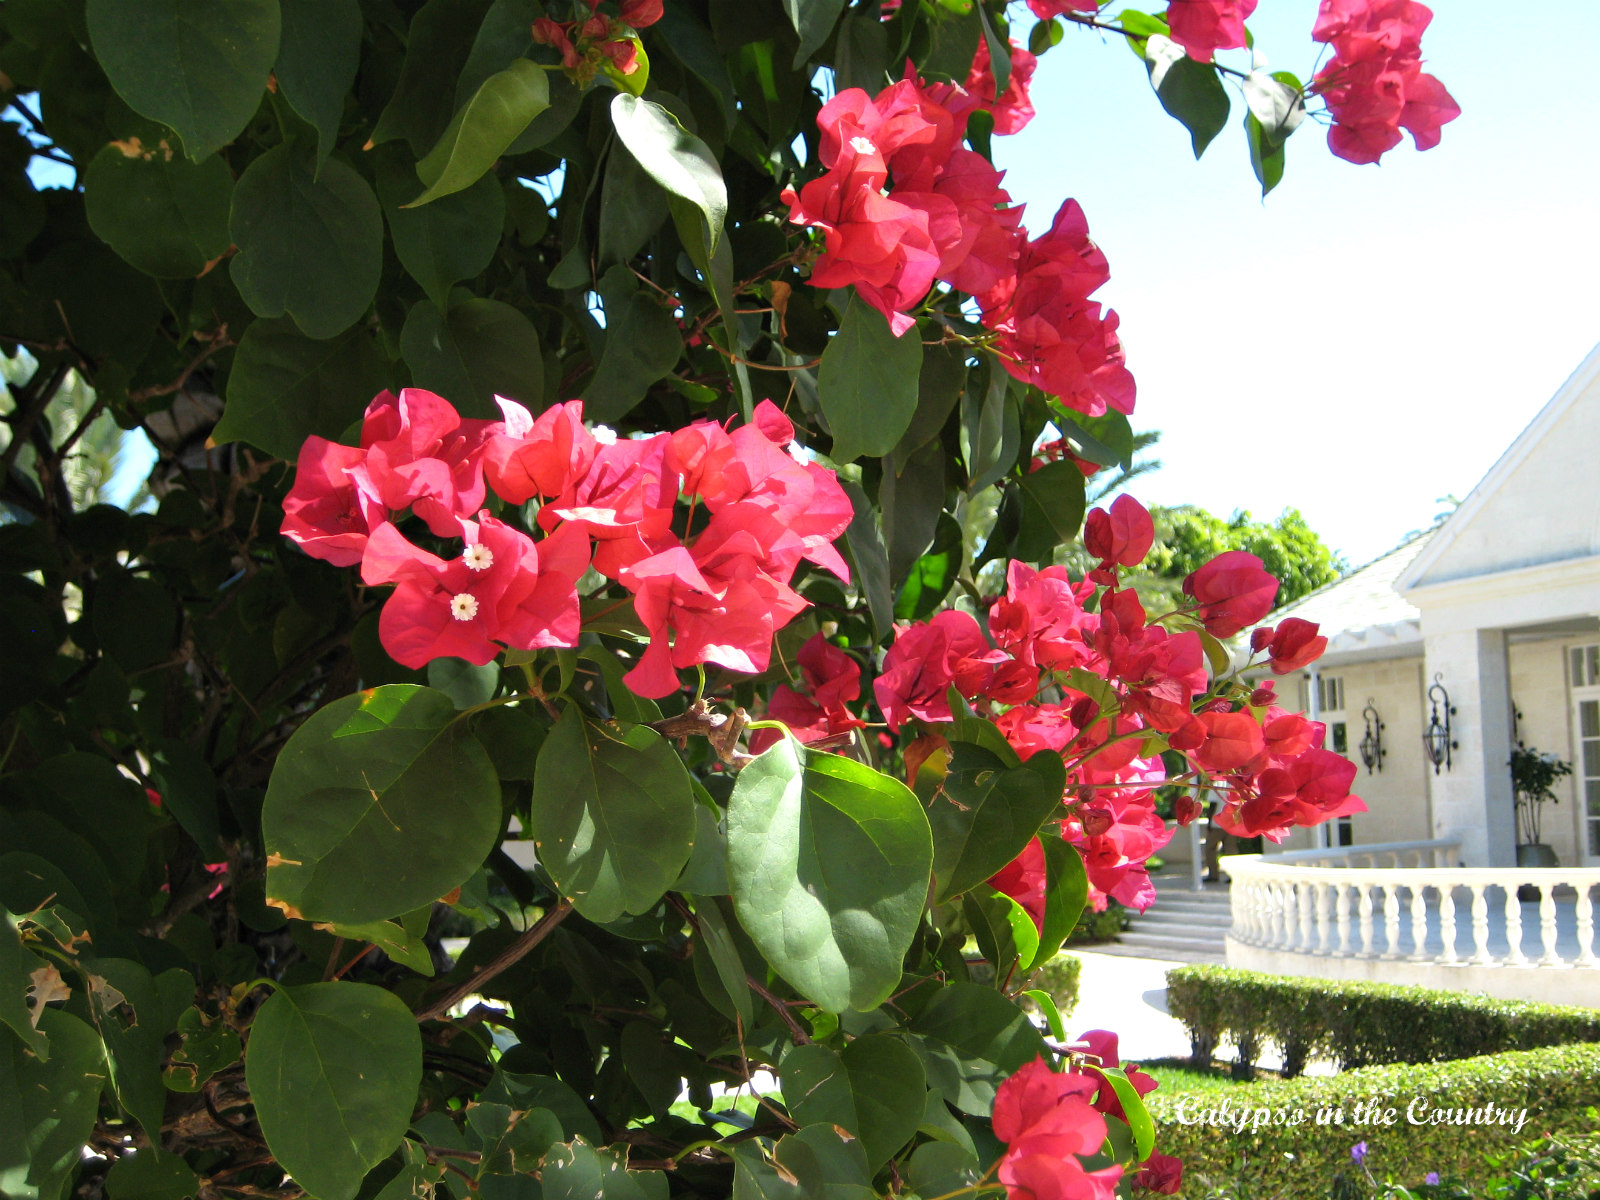 Flowers in the Caribbean